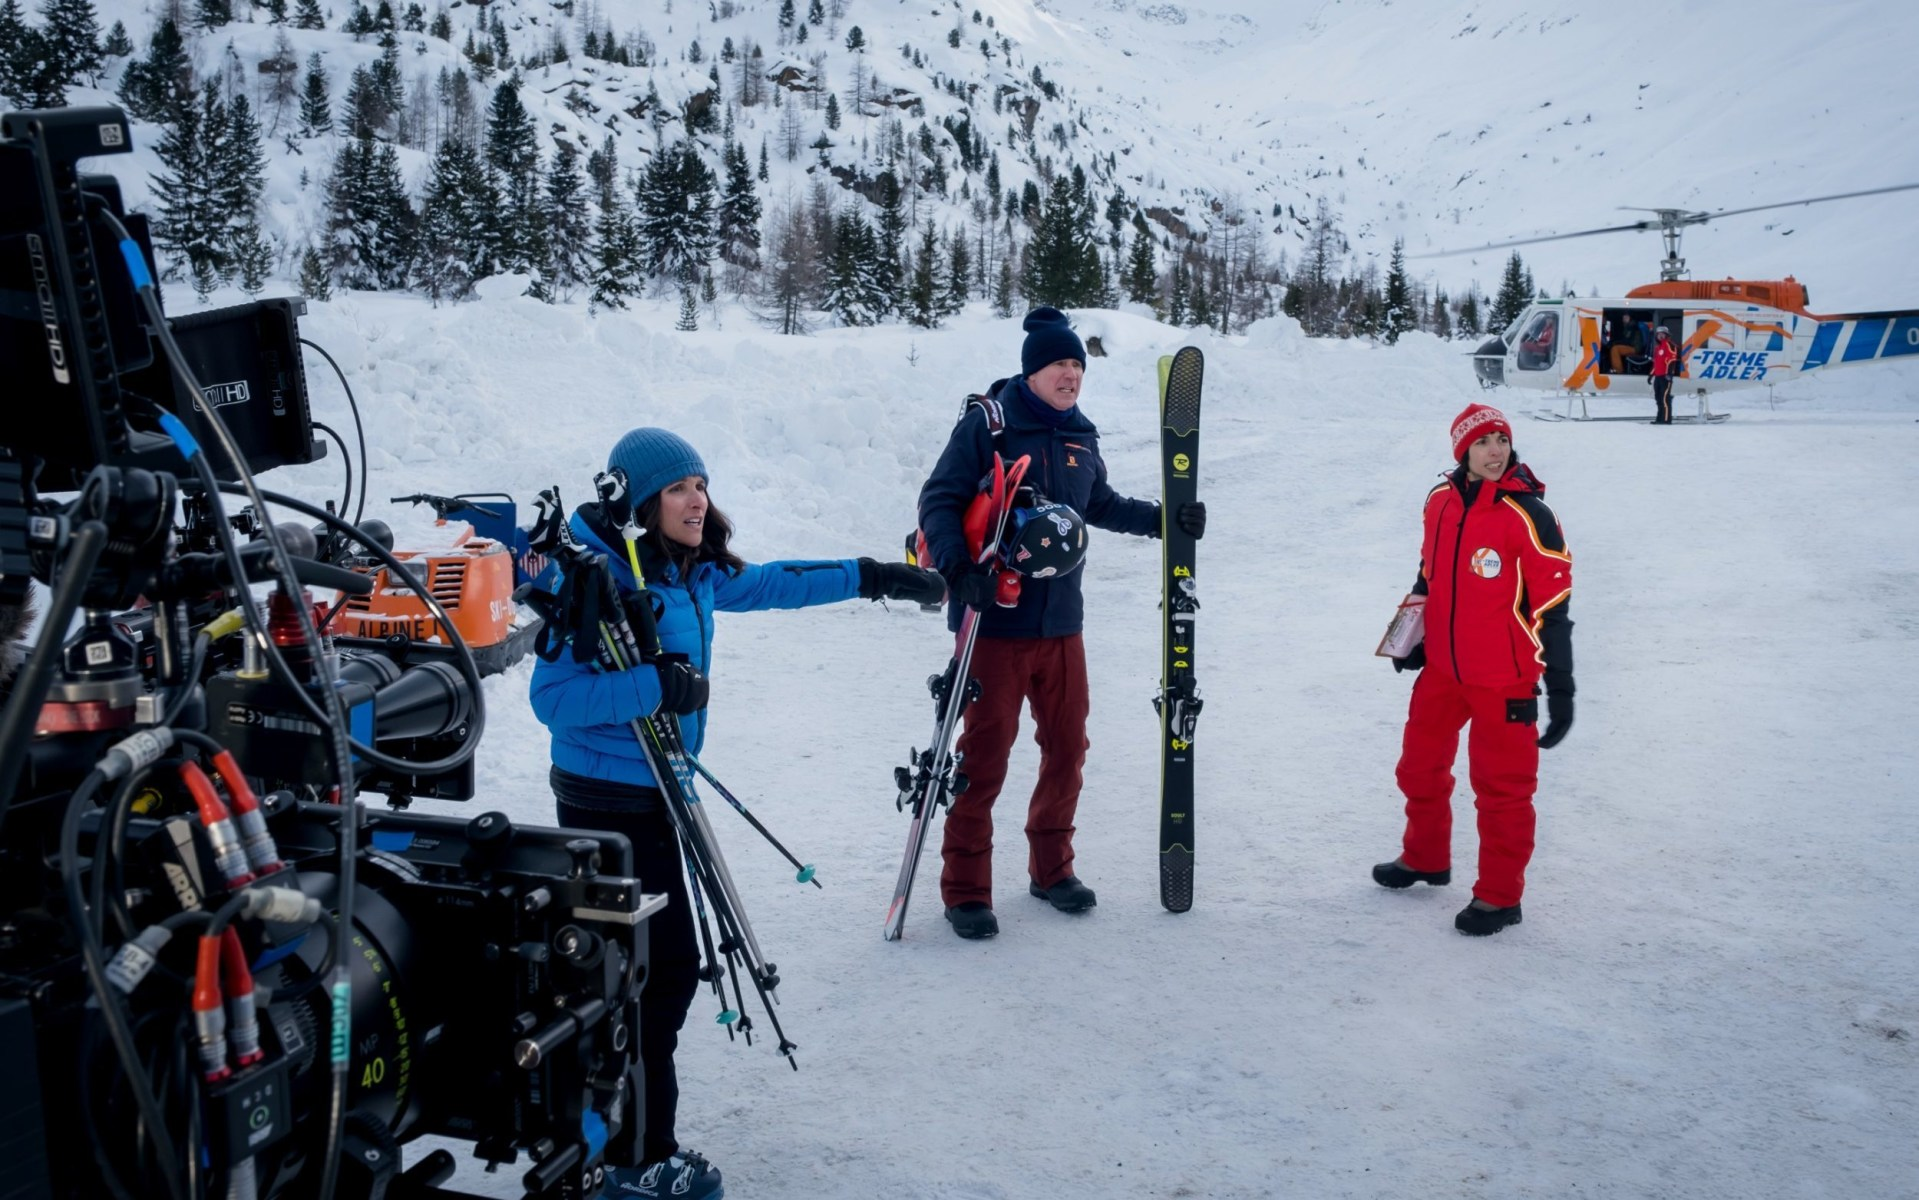 From the Film Downhill Behind the Scenes